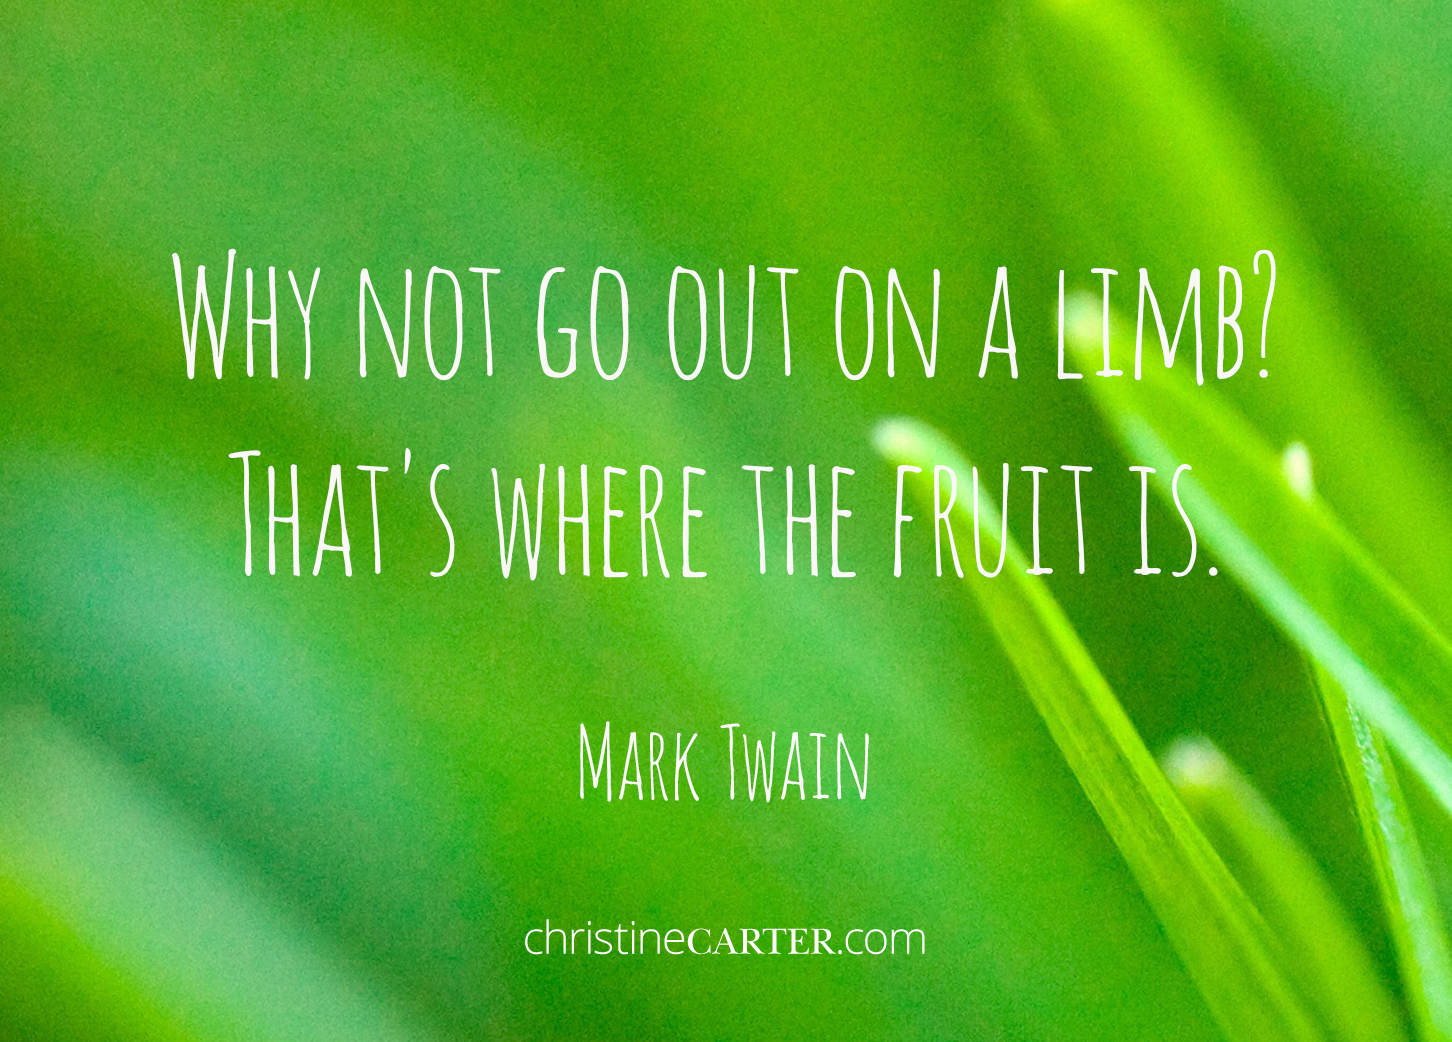 Why not go out on a limb? That's where the fruit is. – Mark Twain